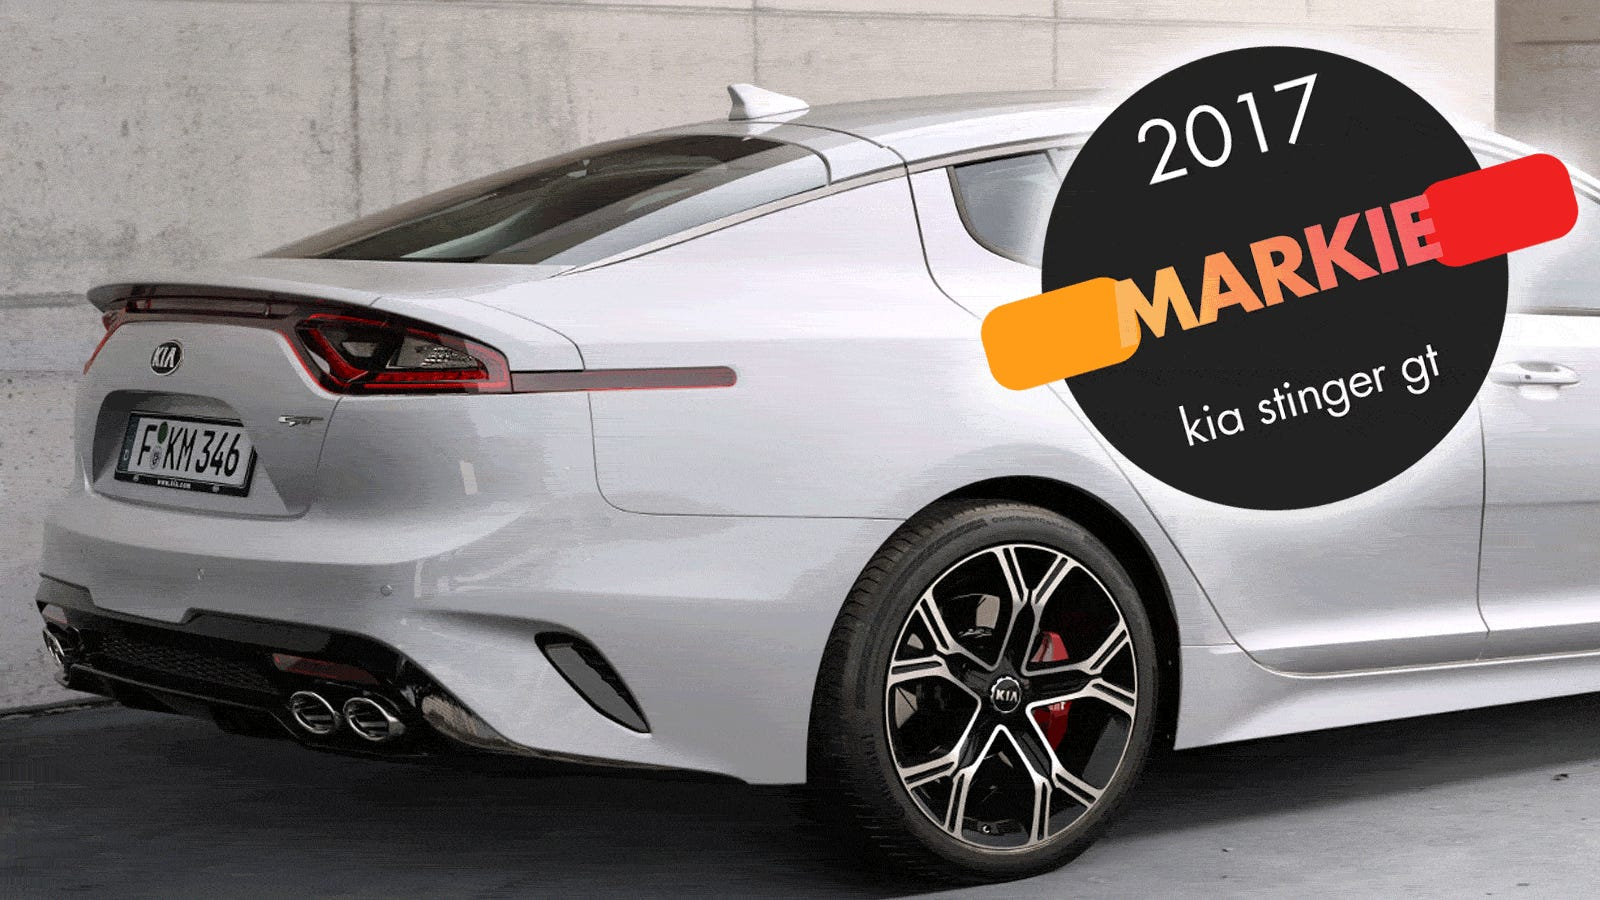 Kia Is Awarded Coveted Markie Award For Excellence In ...